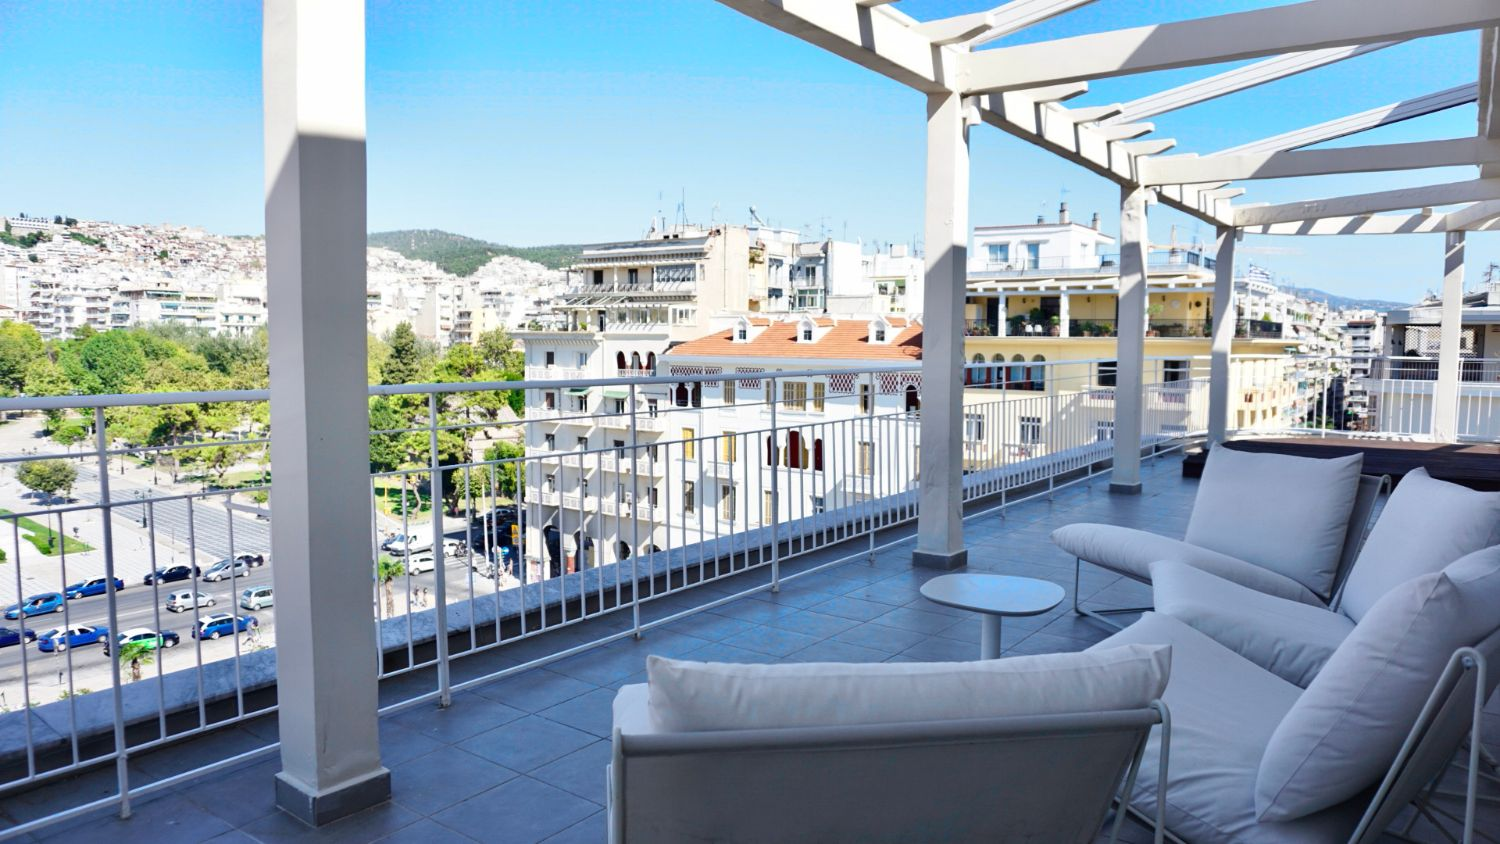 Spacious Balcony with City View